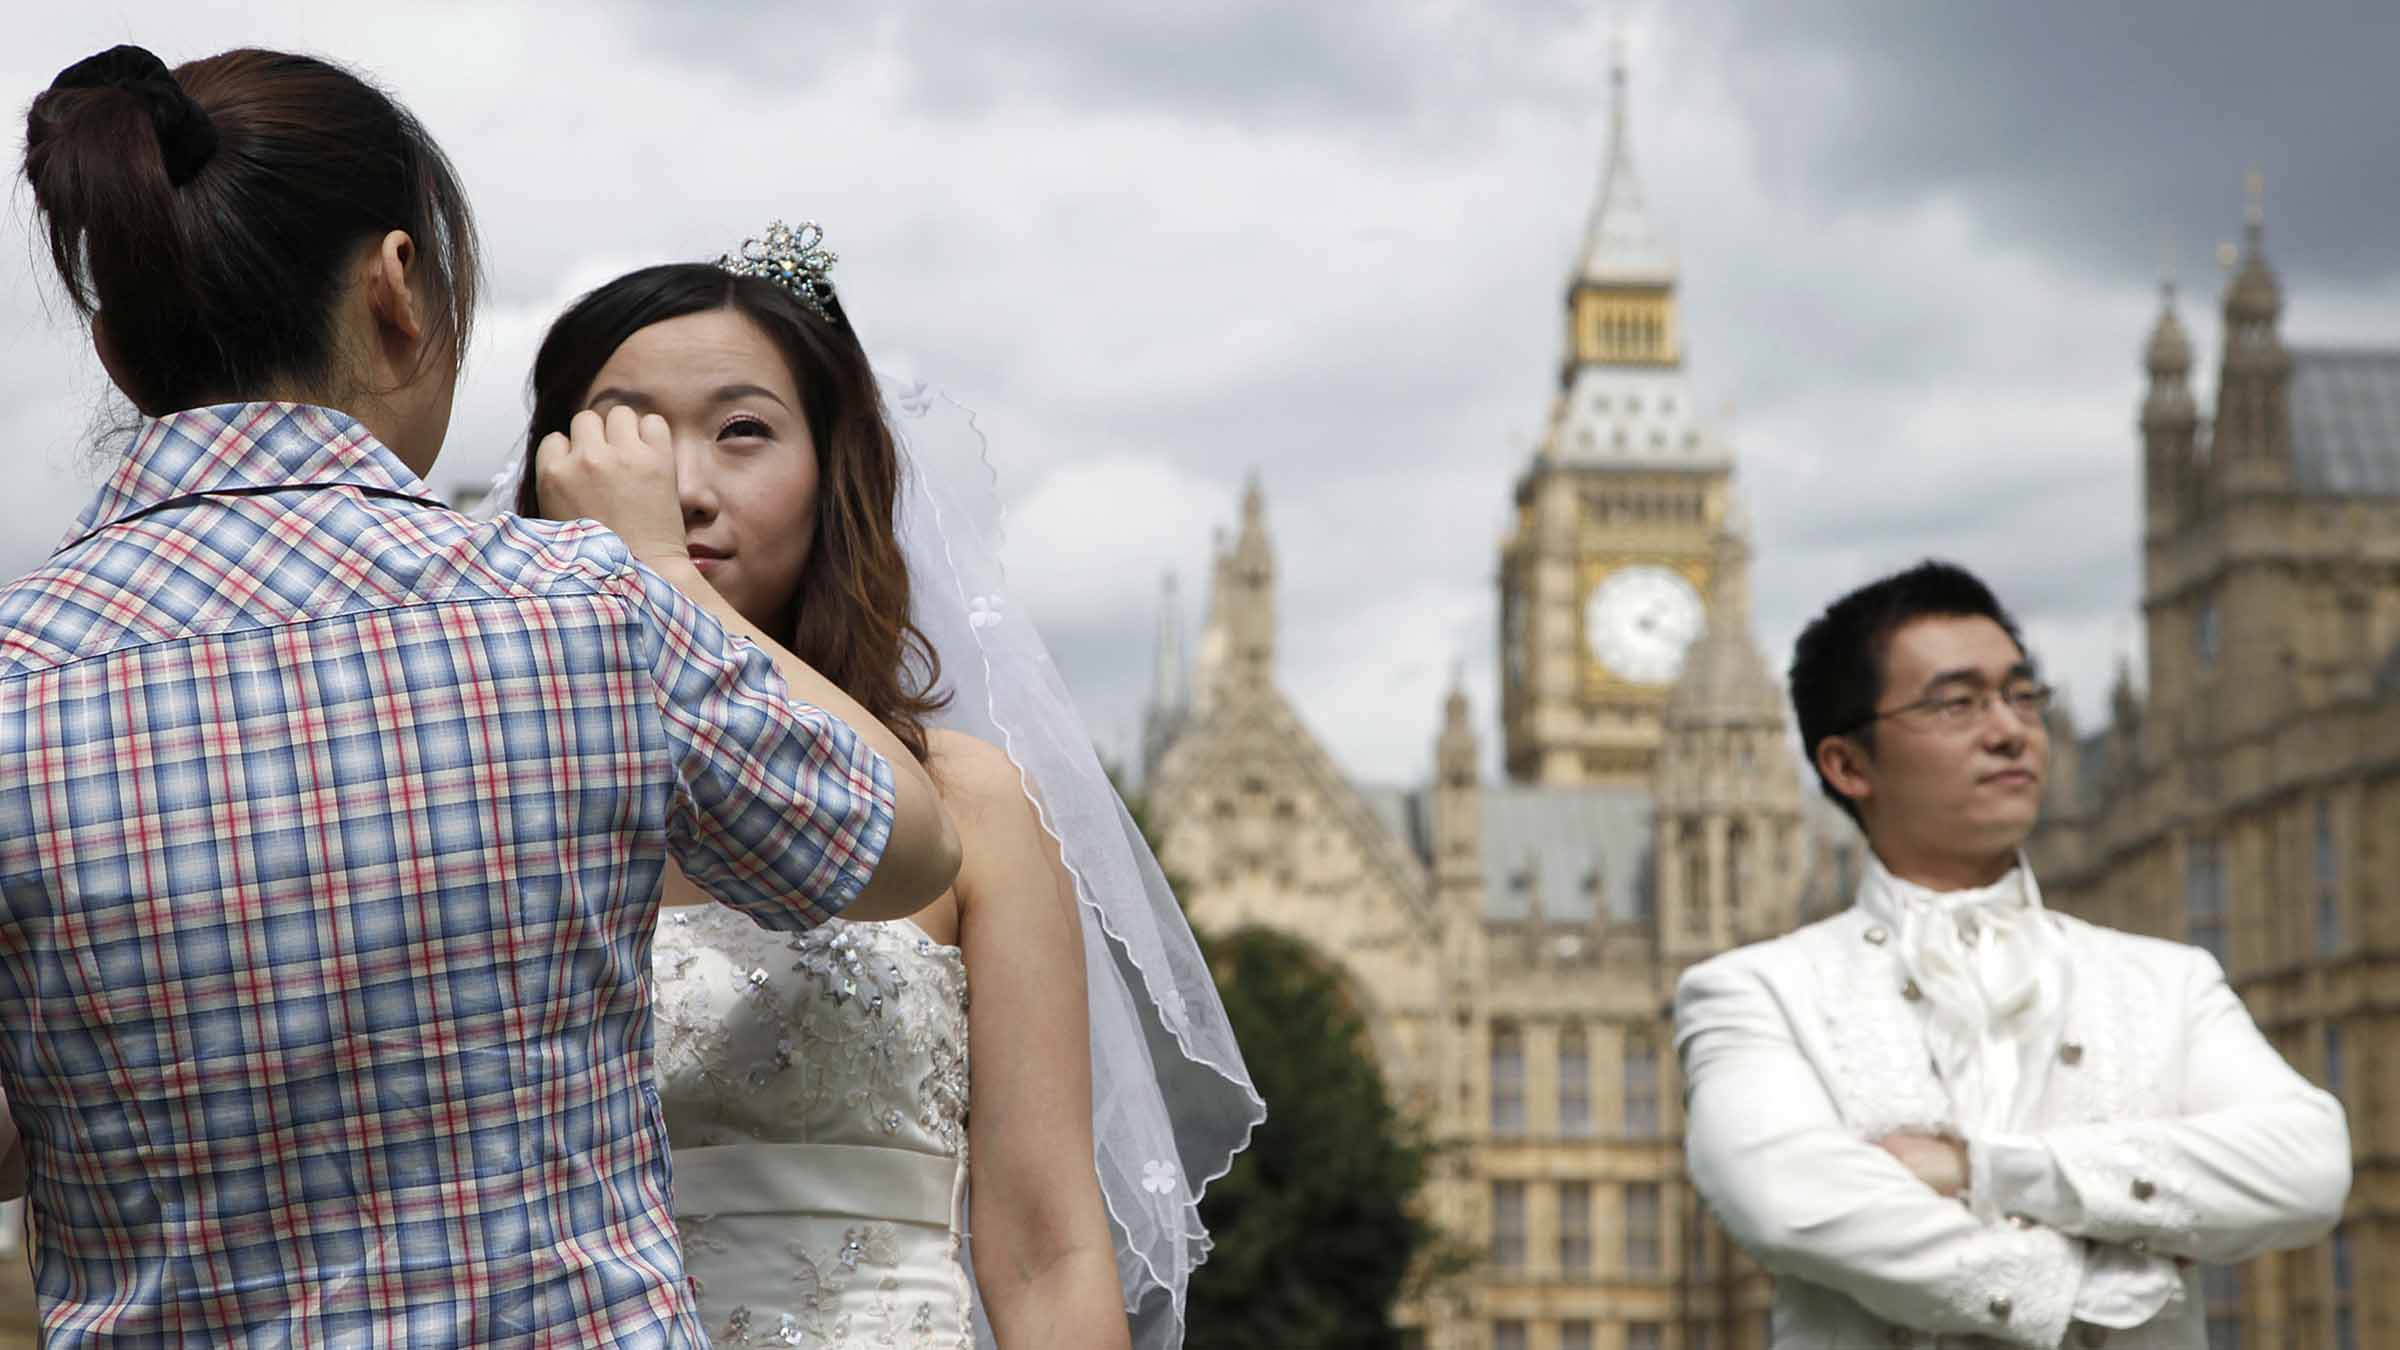 A bride has her make up retouched as her husband waits before a wedding photo shoot outside the Houses of Parliament in London